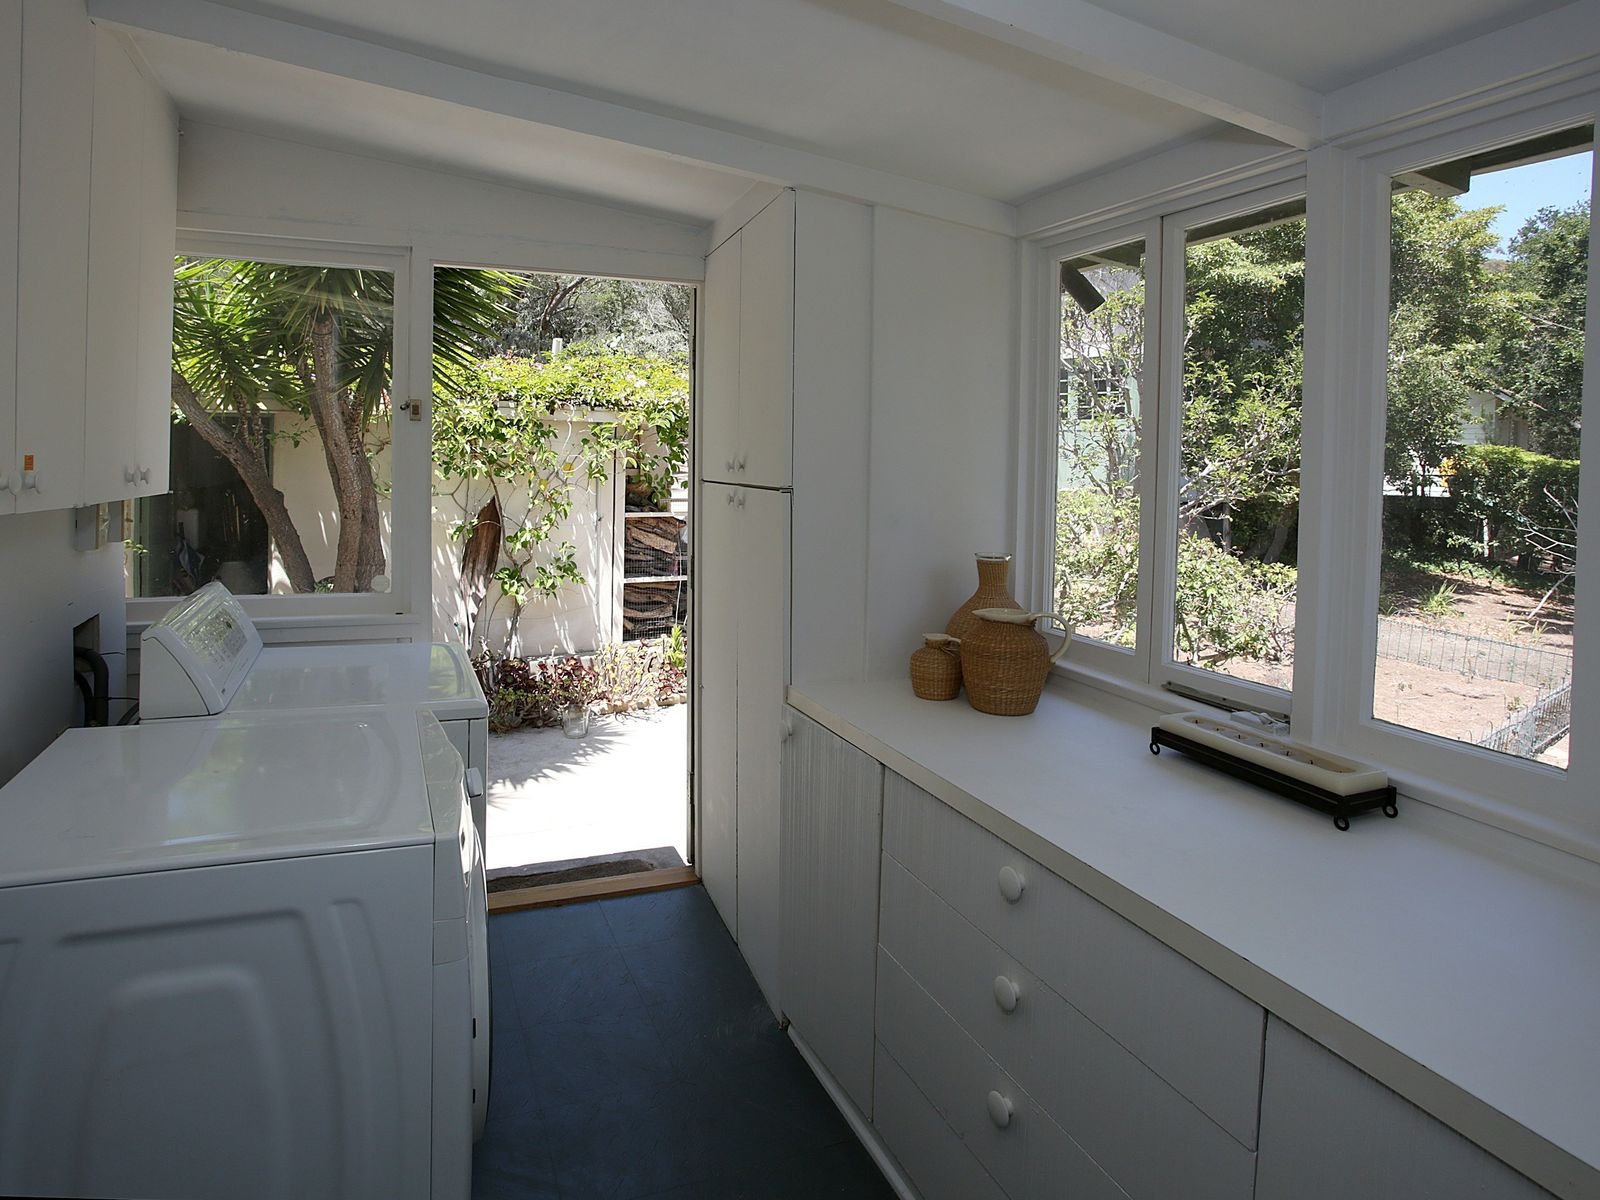 Laundry Room and Herb Garden